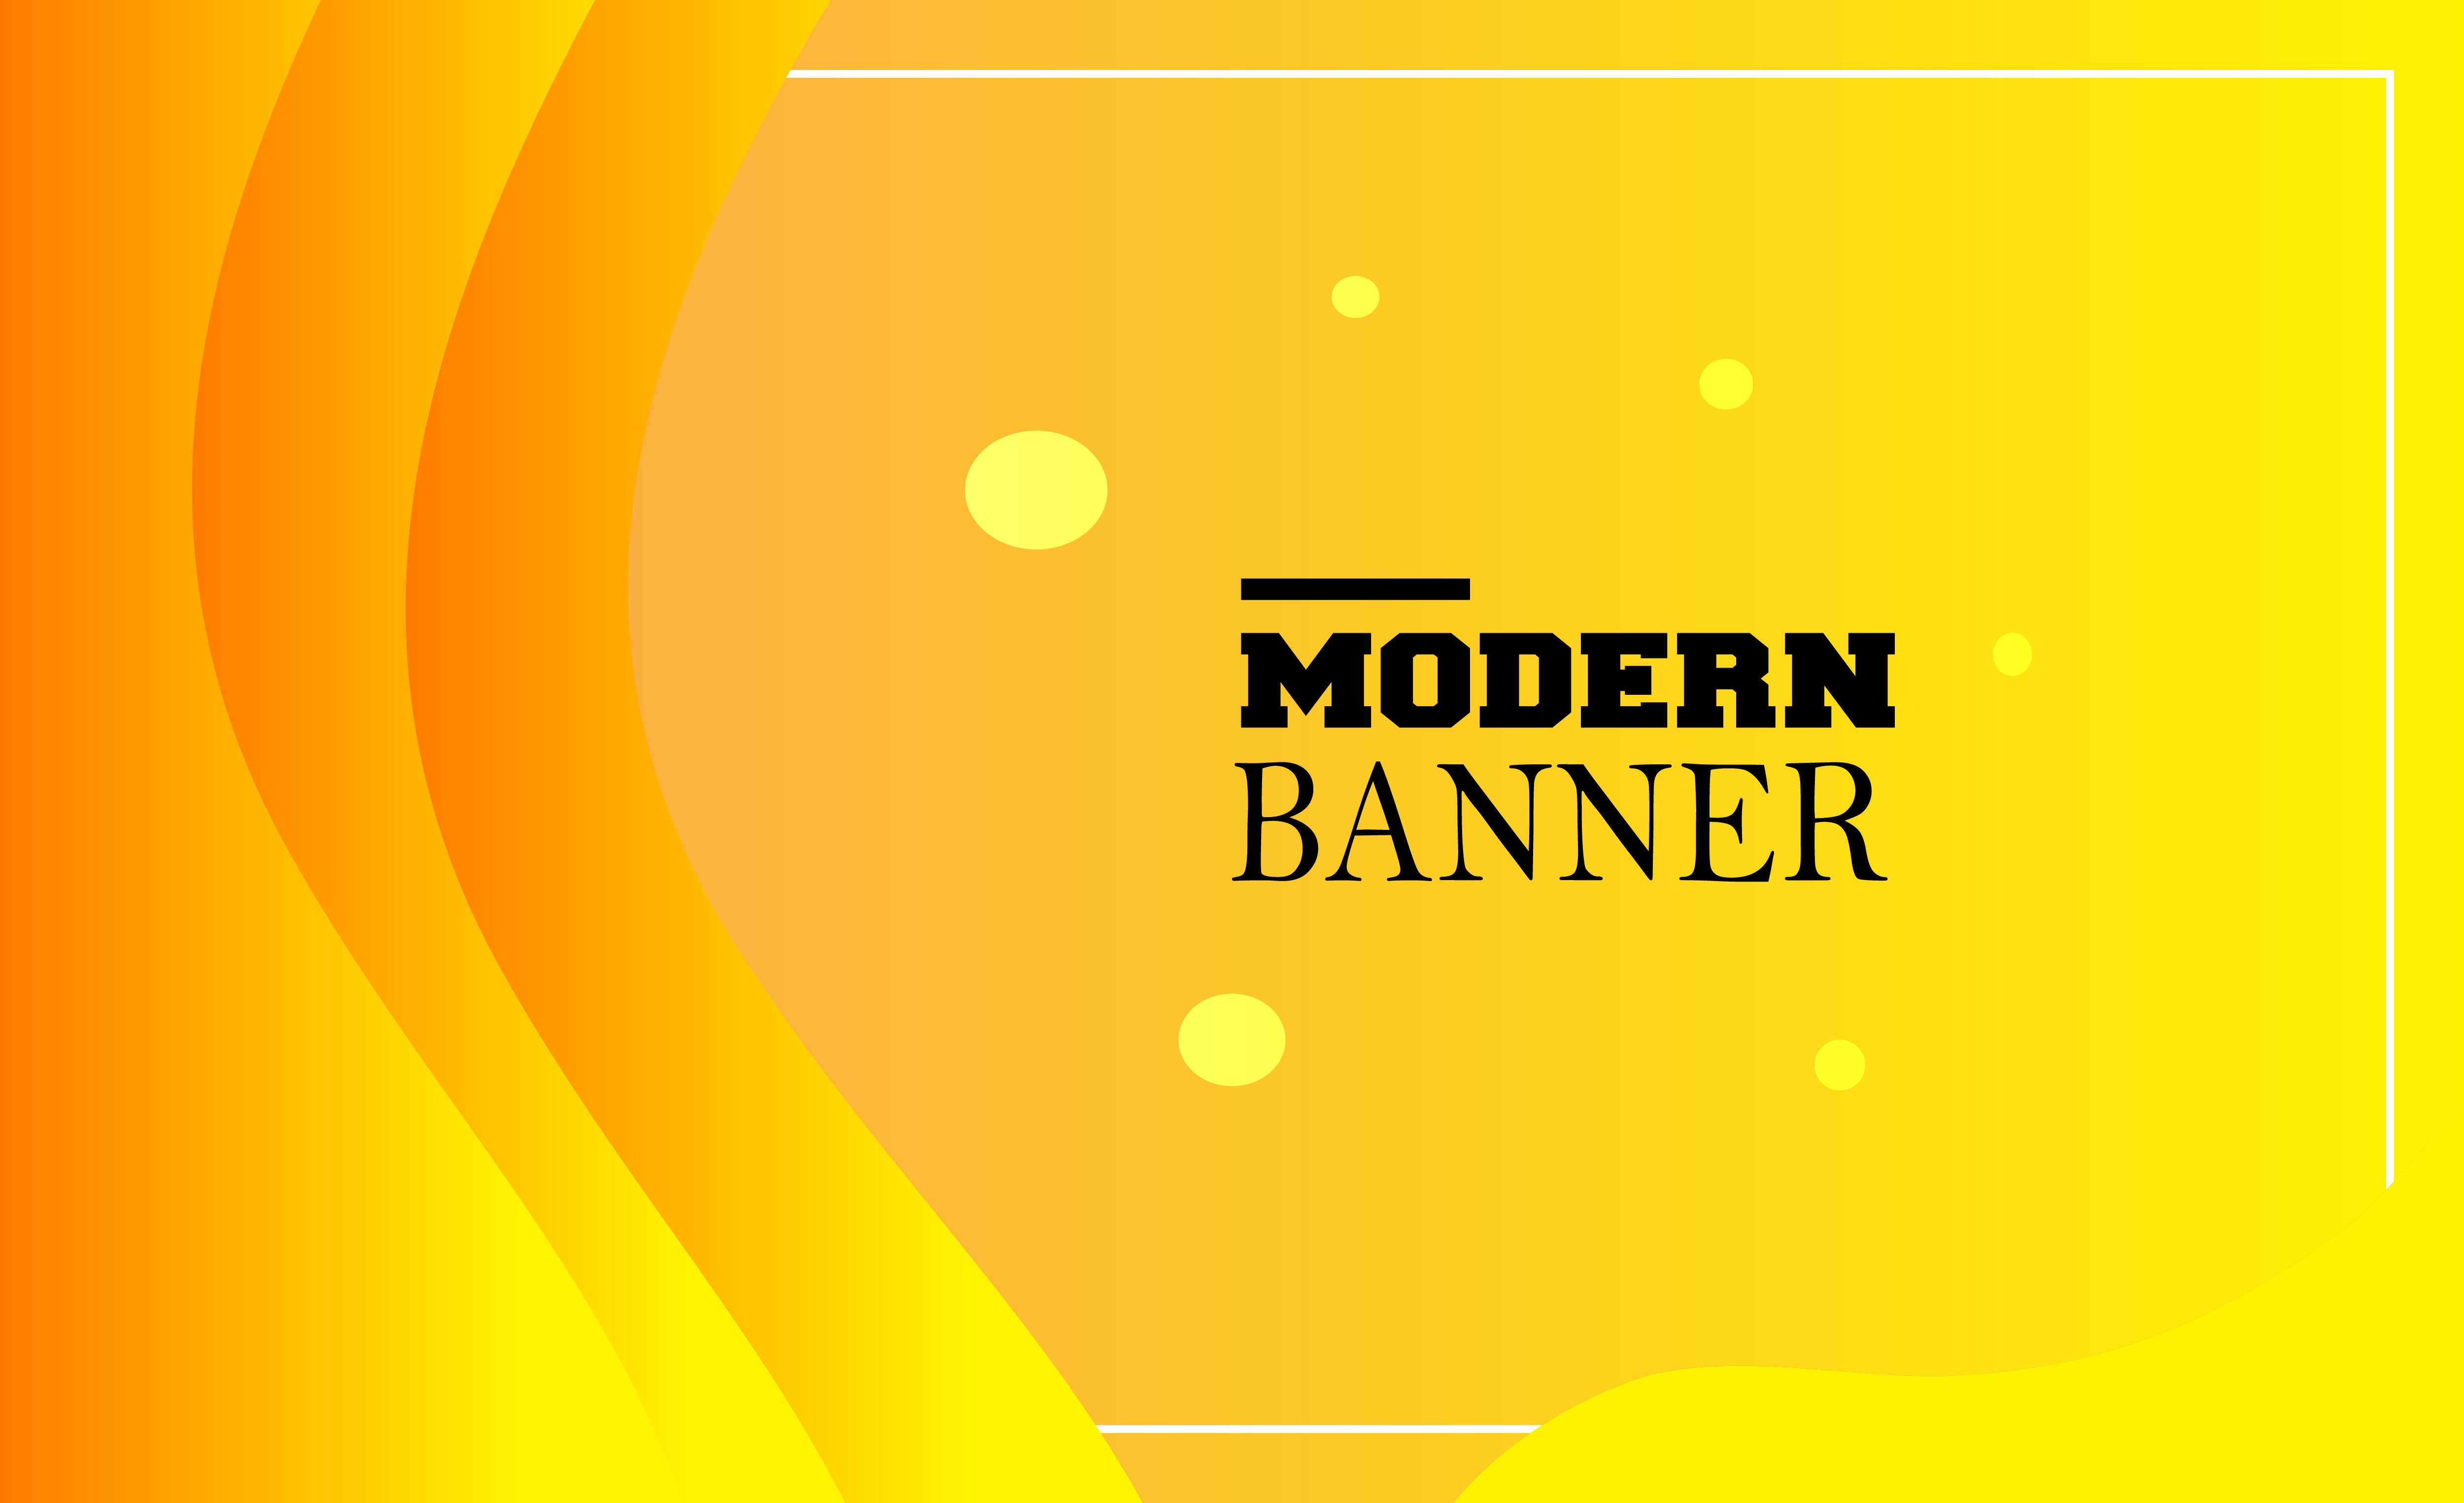 Download Free Modern Banner Graphic By Mahesa Design Creative Fabrica for Cricut Explore, Silhouette and other cutting machines.